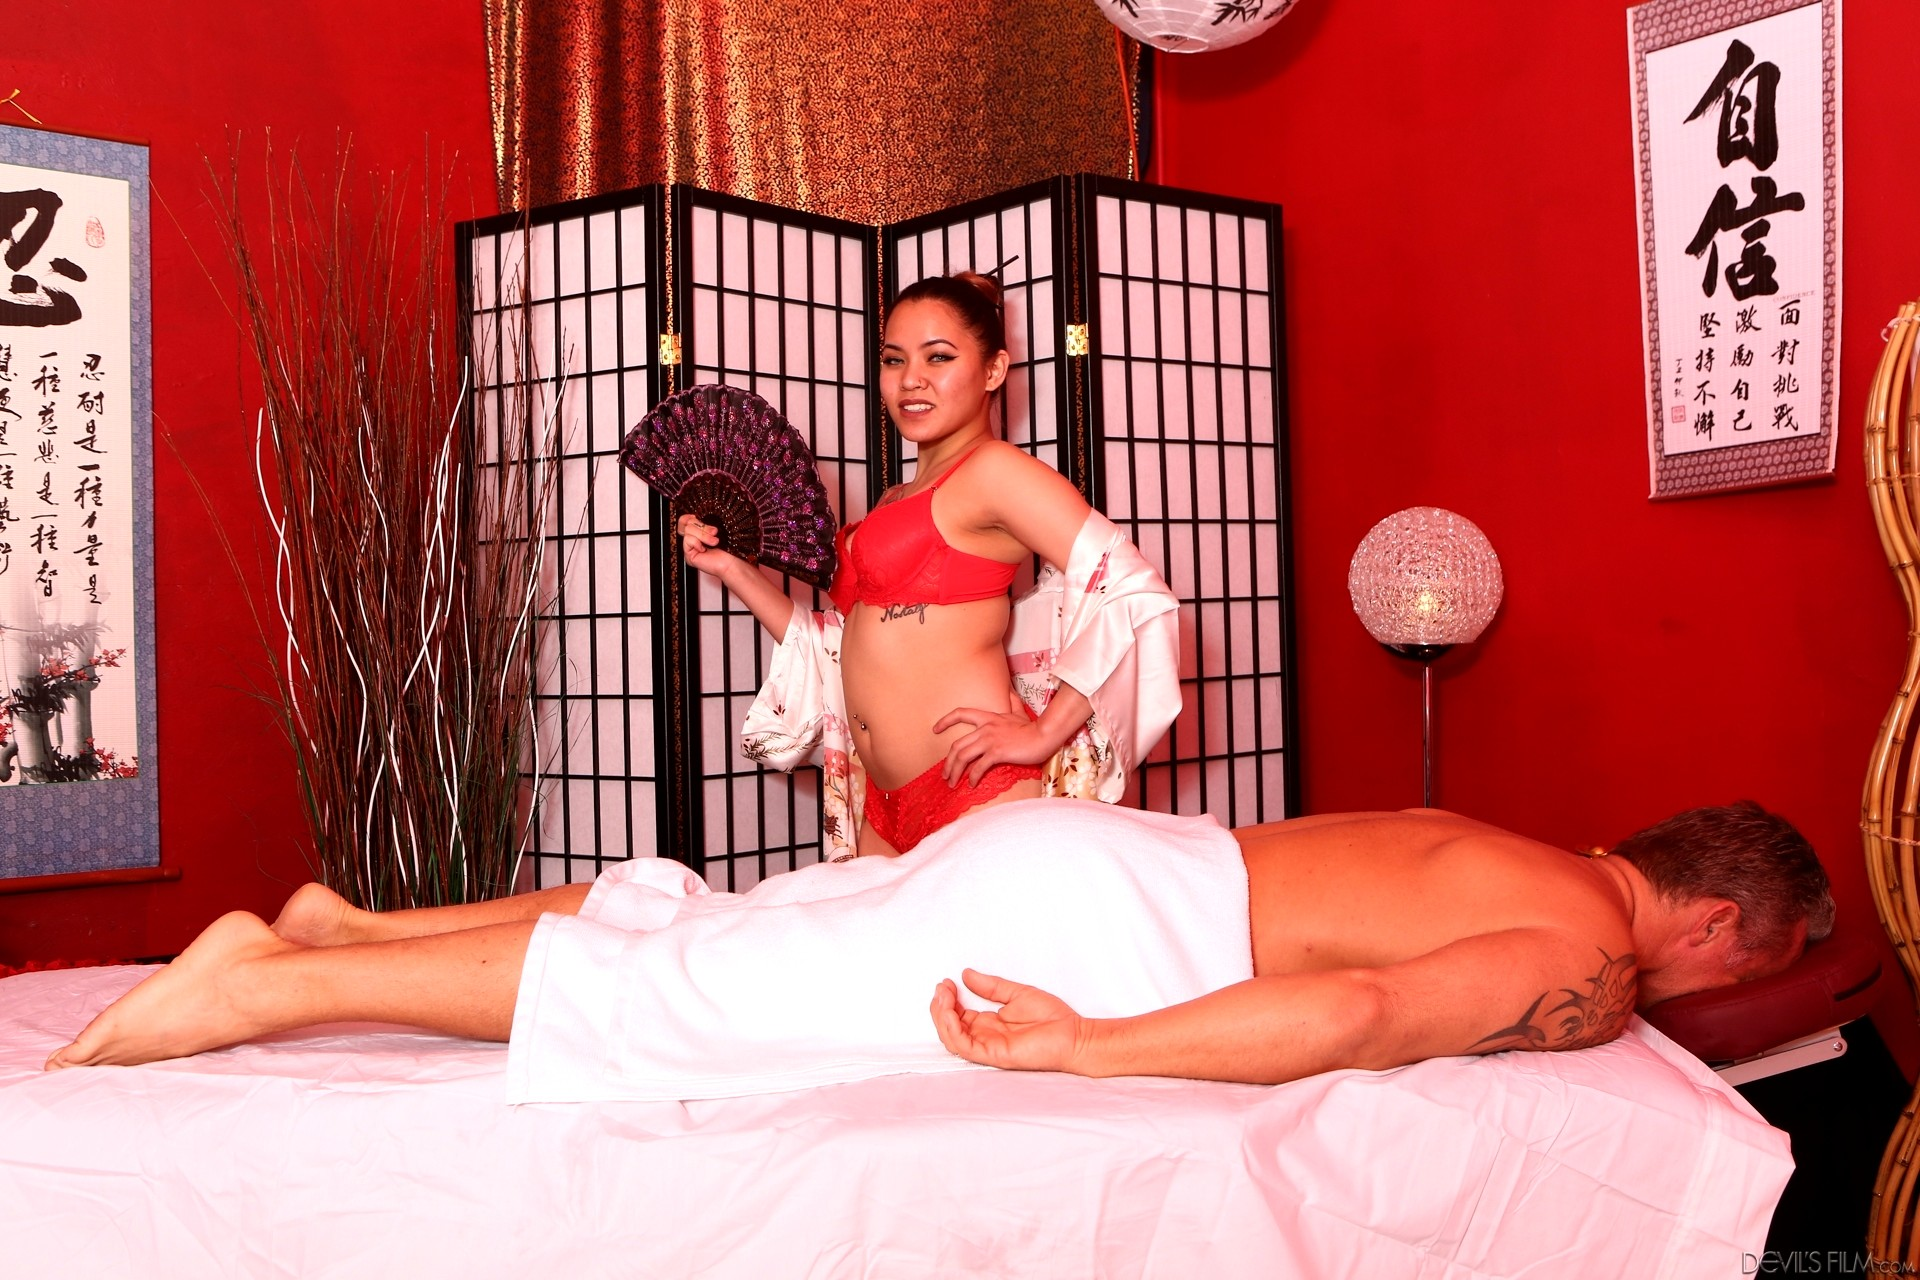 Asian massage reviews new jersey